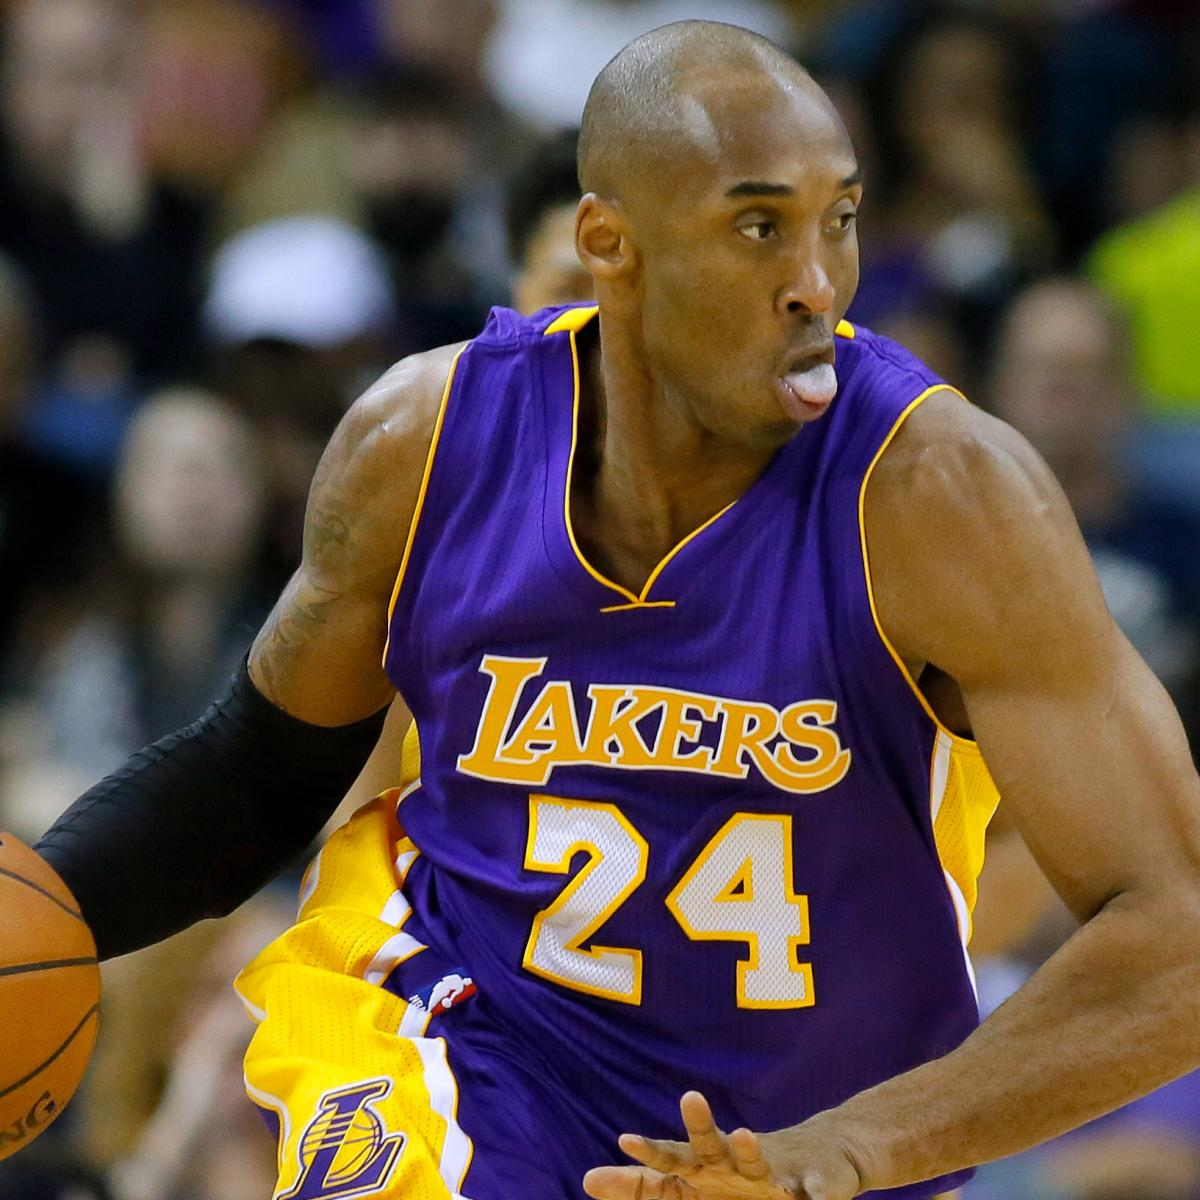 Lakers World16: Lakers 2015-16 Schedule: Top Games, Championship Odds And